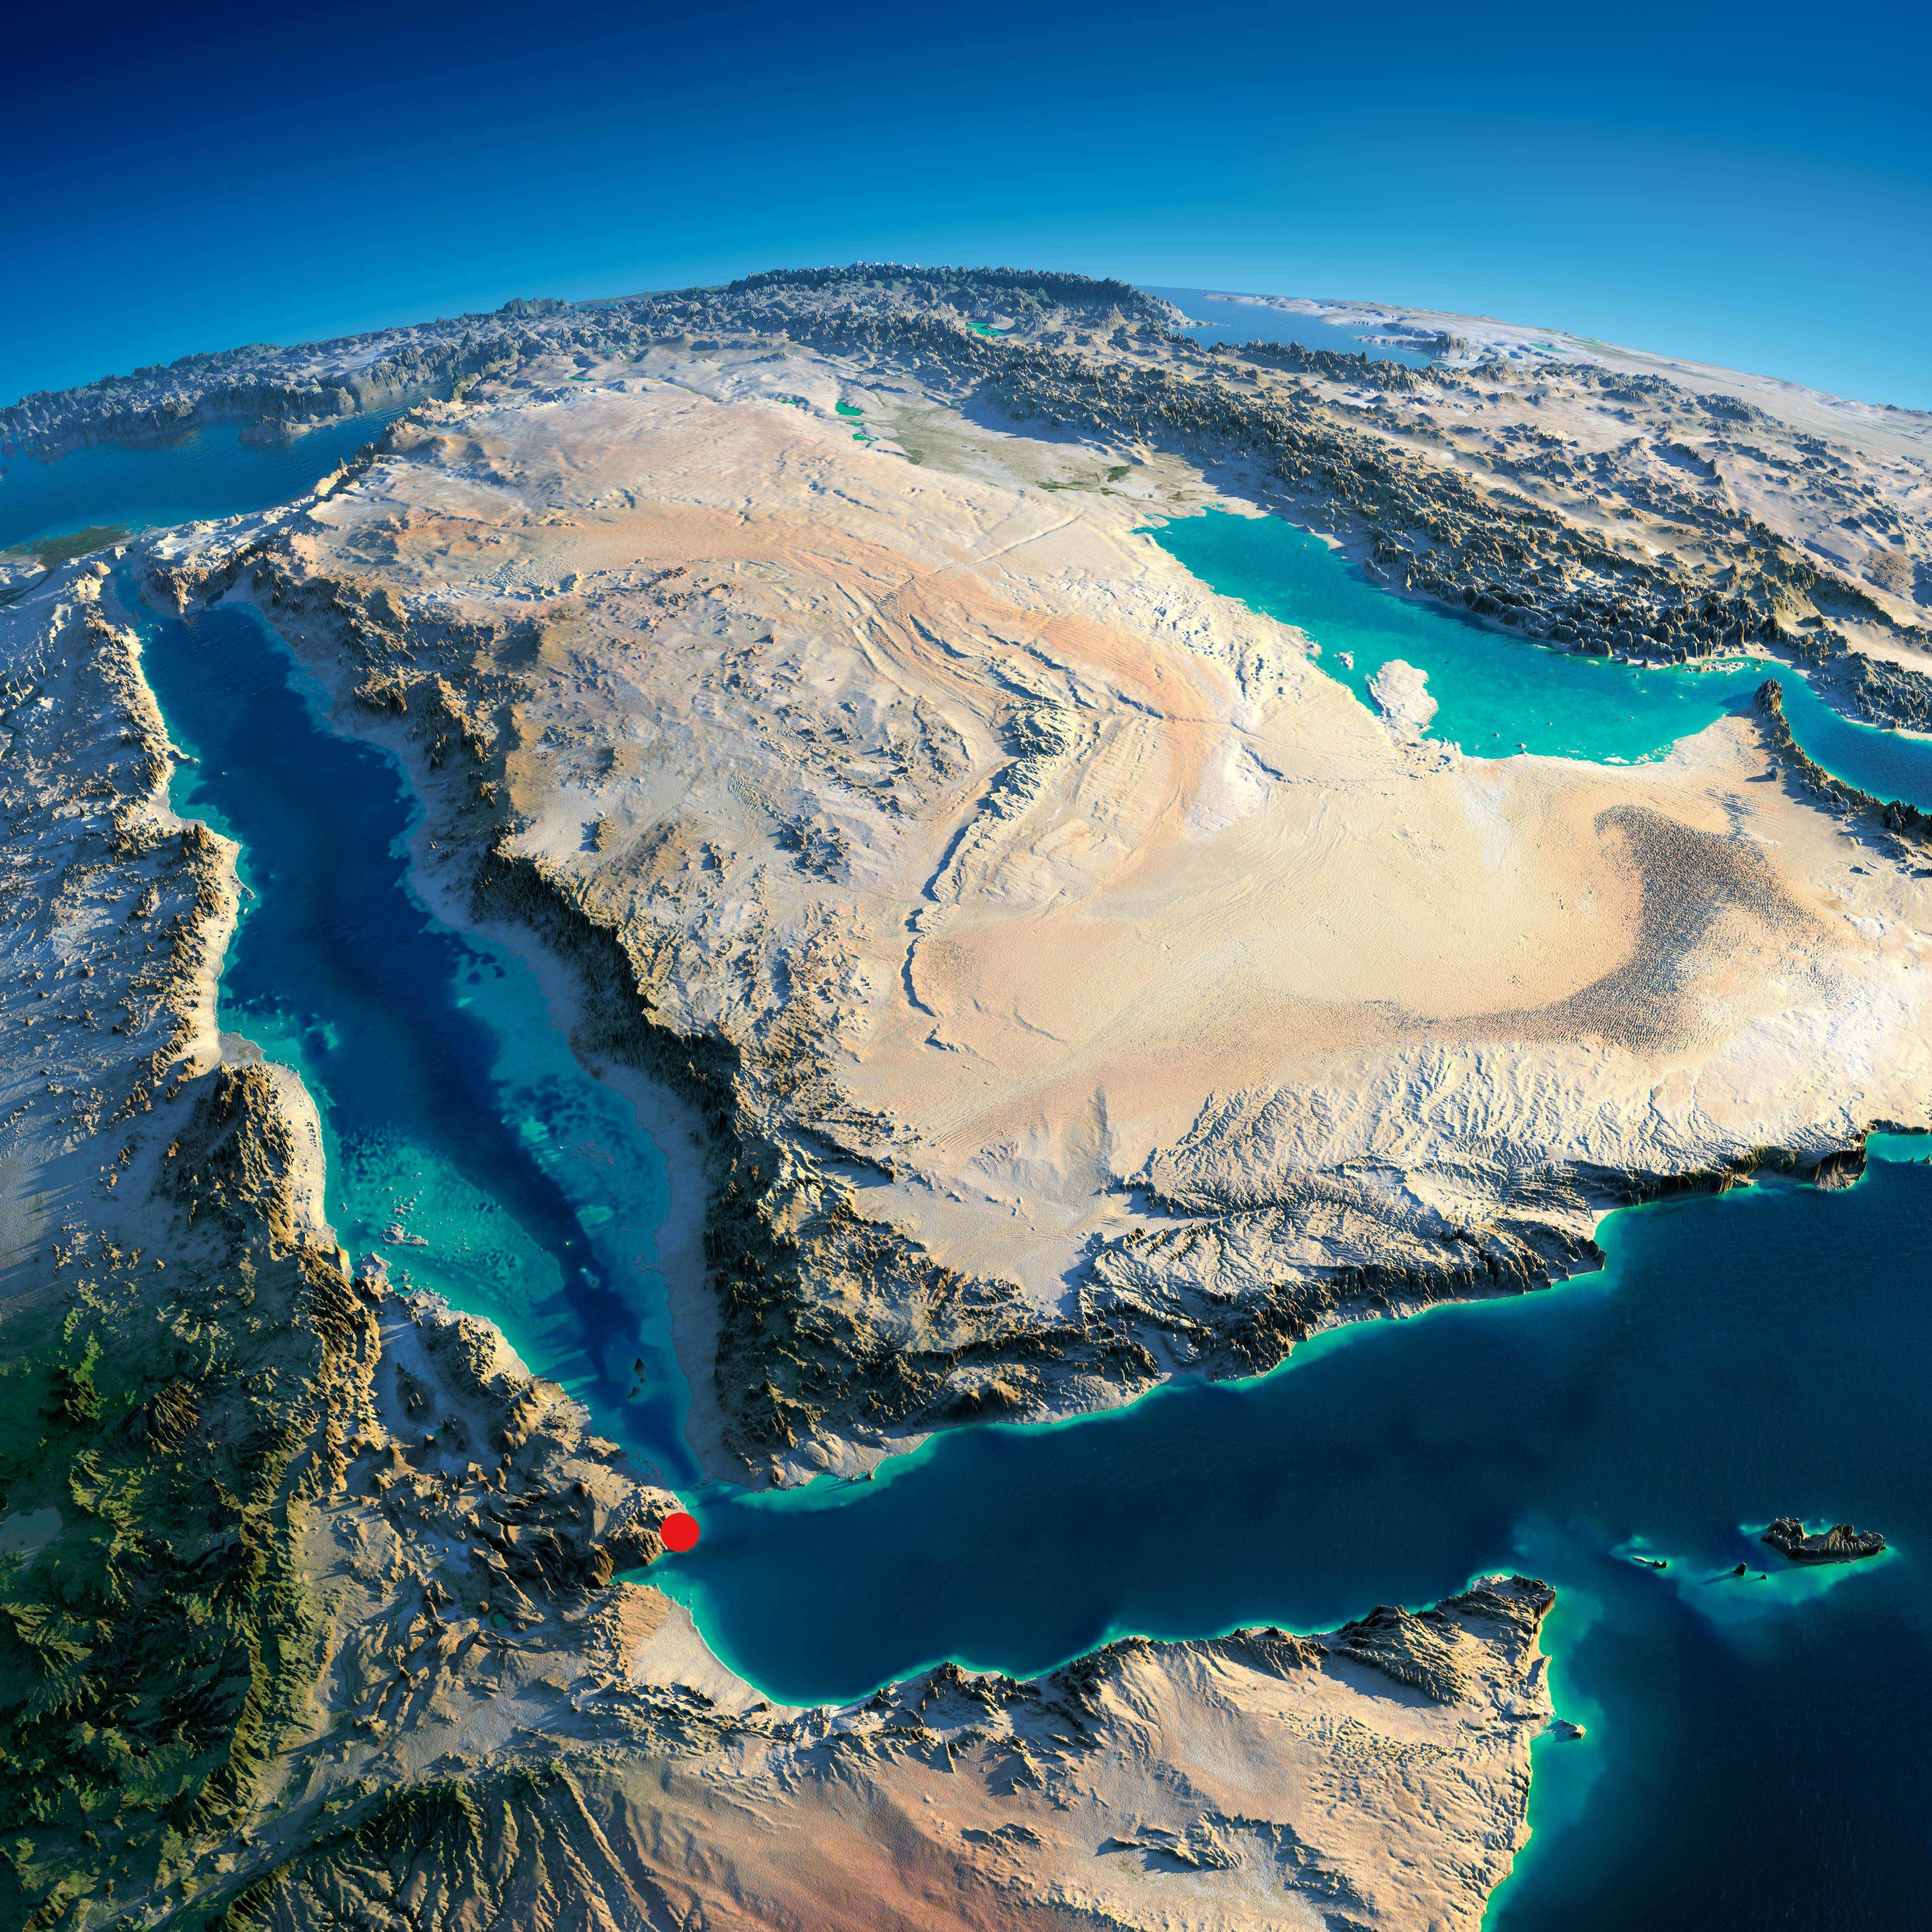 Exaggerated Relief Map Of The Arabian Peninsula With